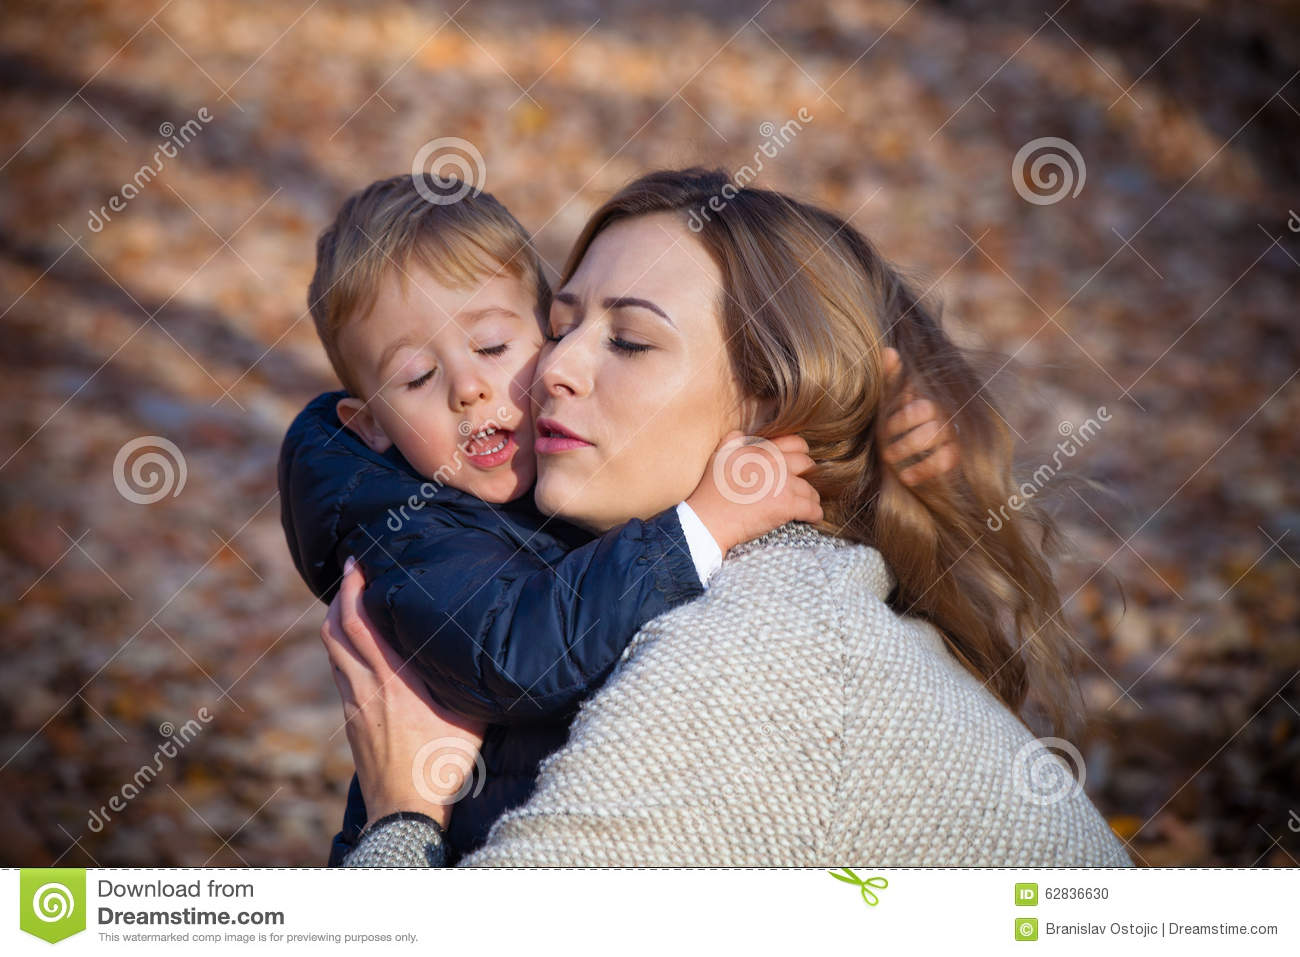 Mother and son in love